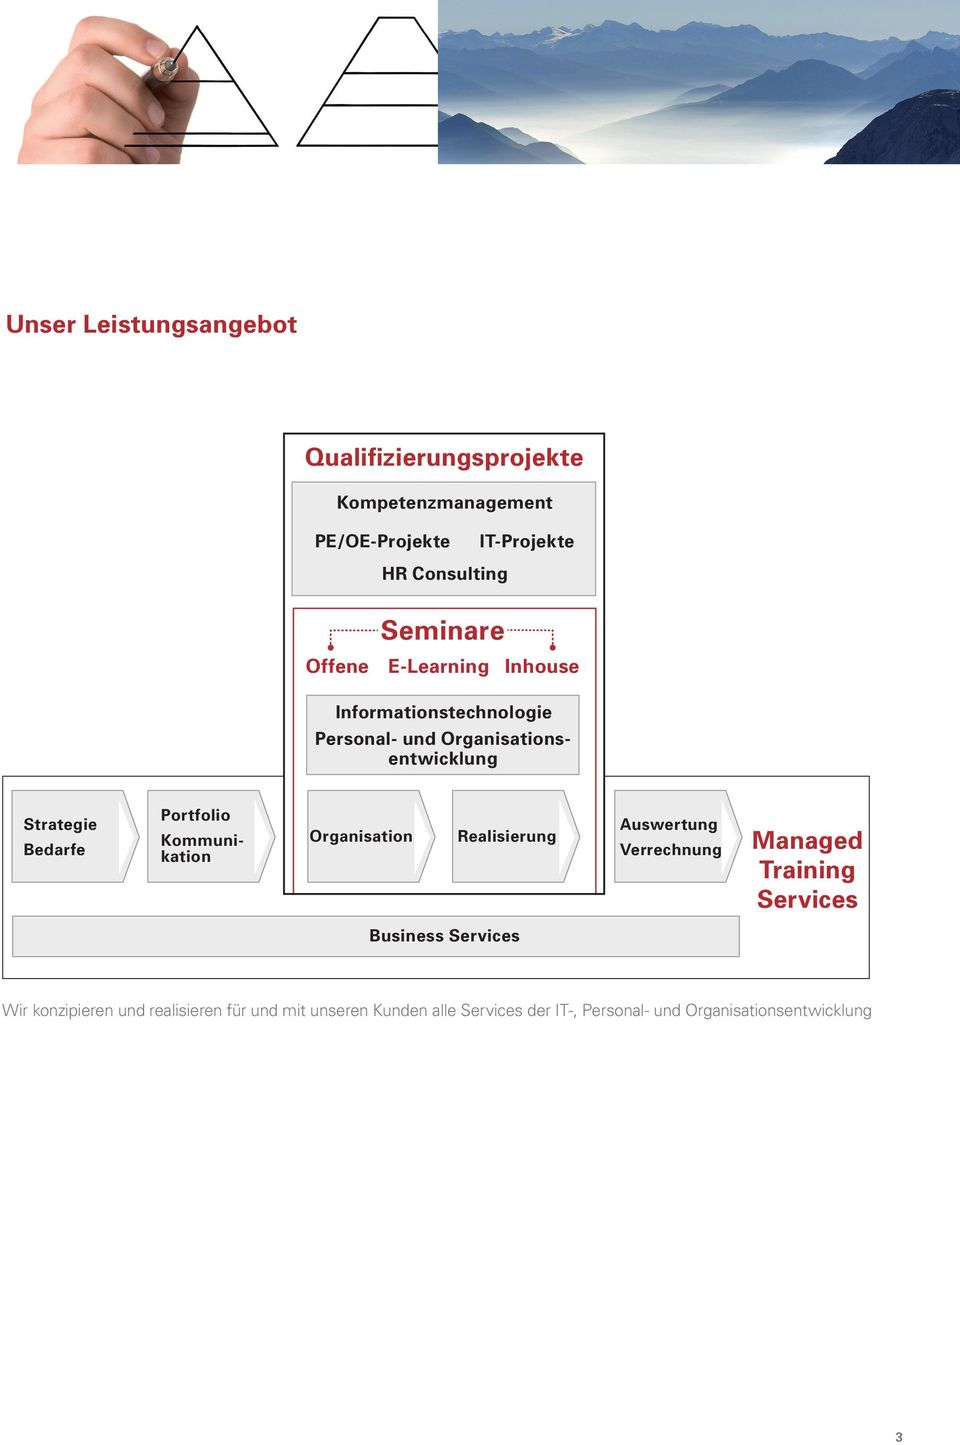 Portfolio Kommunikation Organisation Realisierung Auswertung Verrechnung Managed Training Services Business